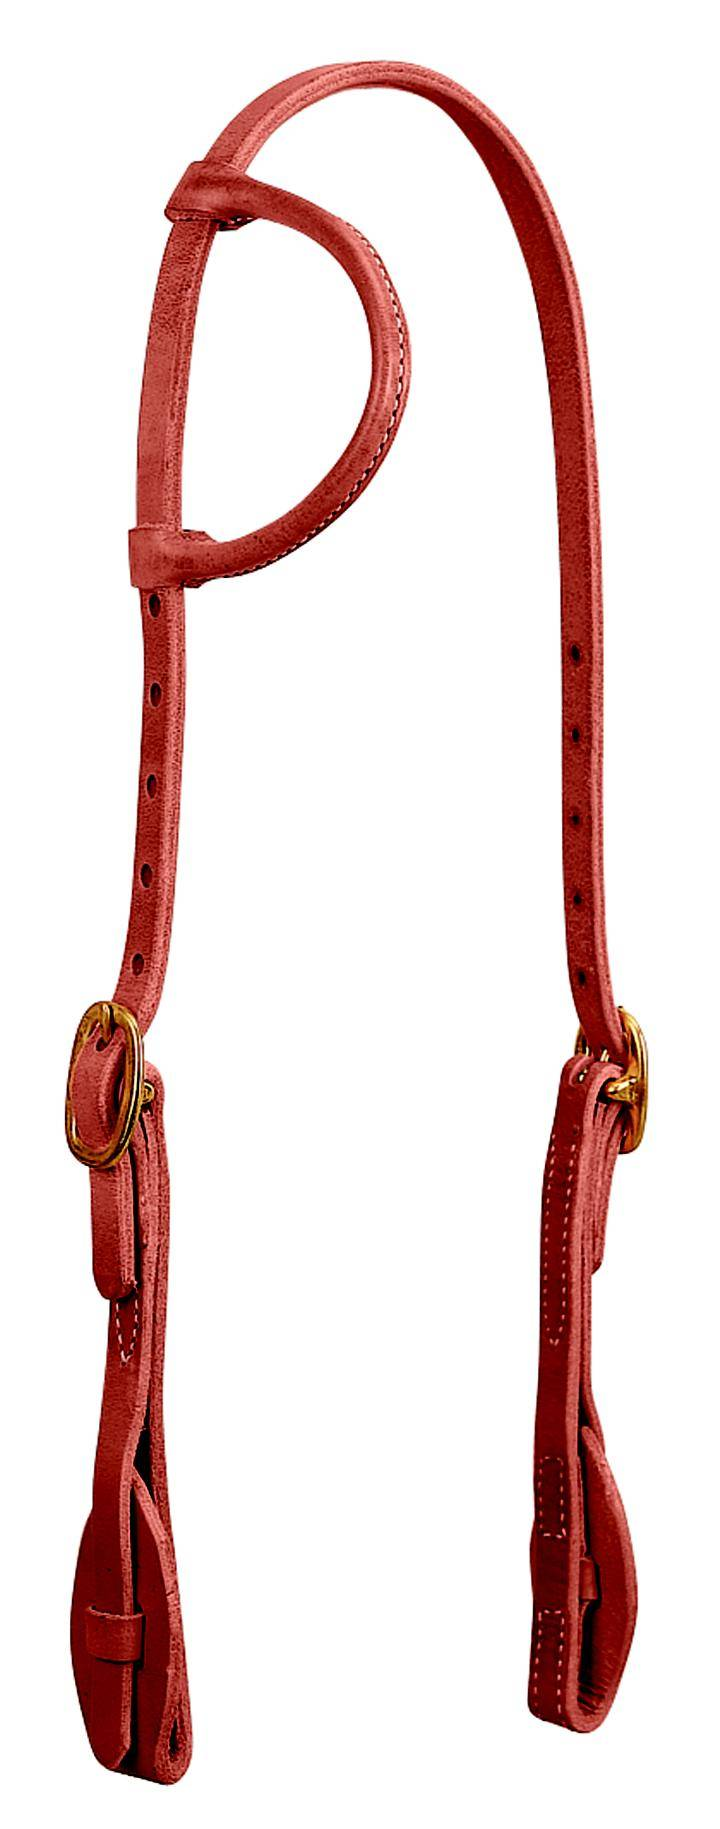 Weaver Leather Quick Change Sliding Ear Headstall